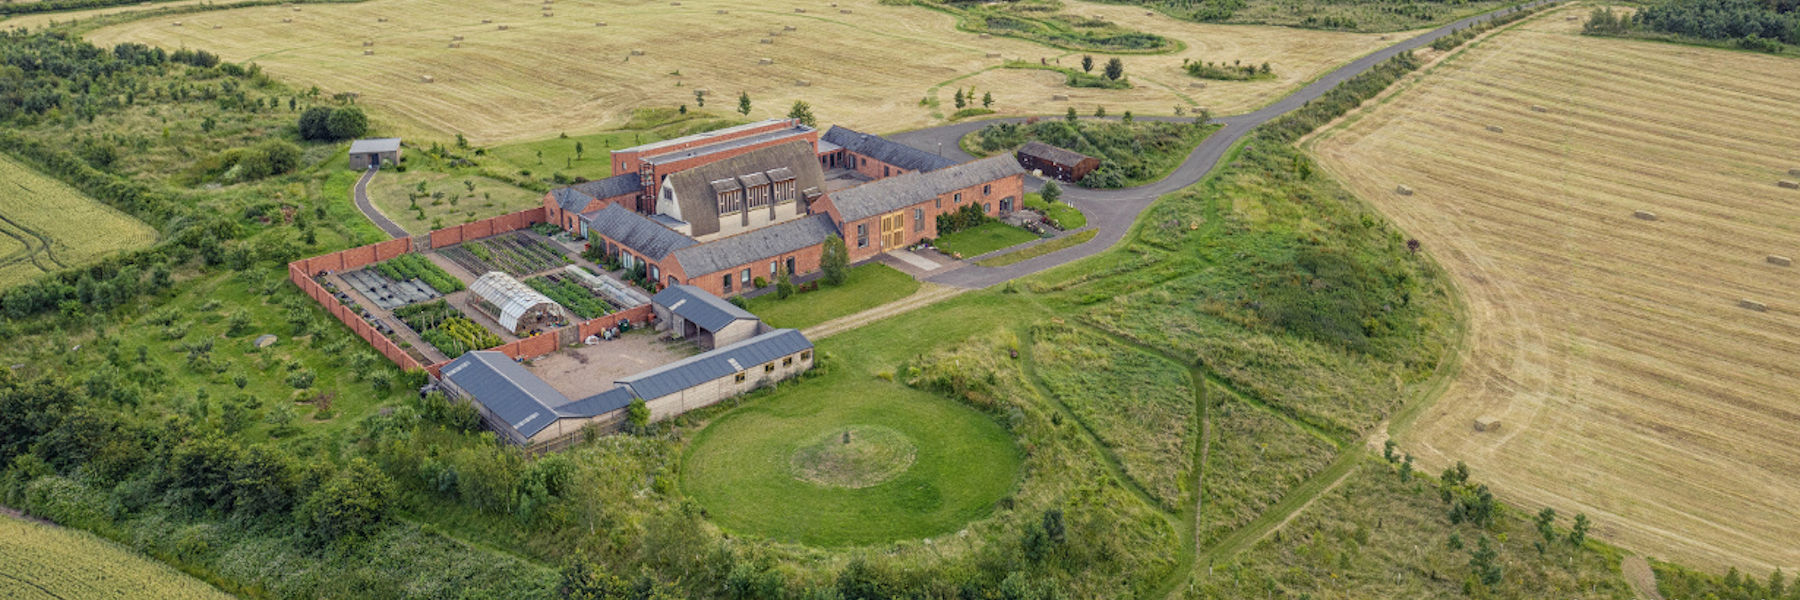 OSB Mucknell Abbey from the air